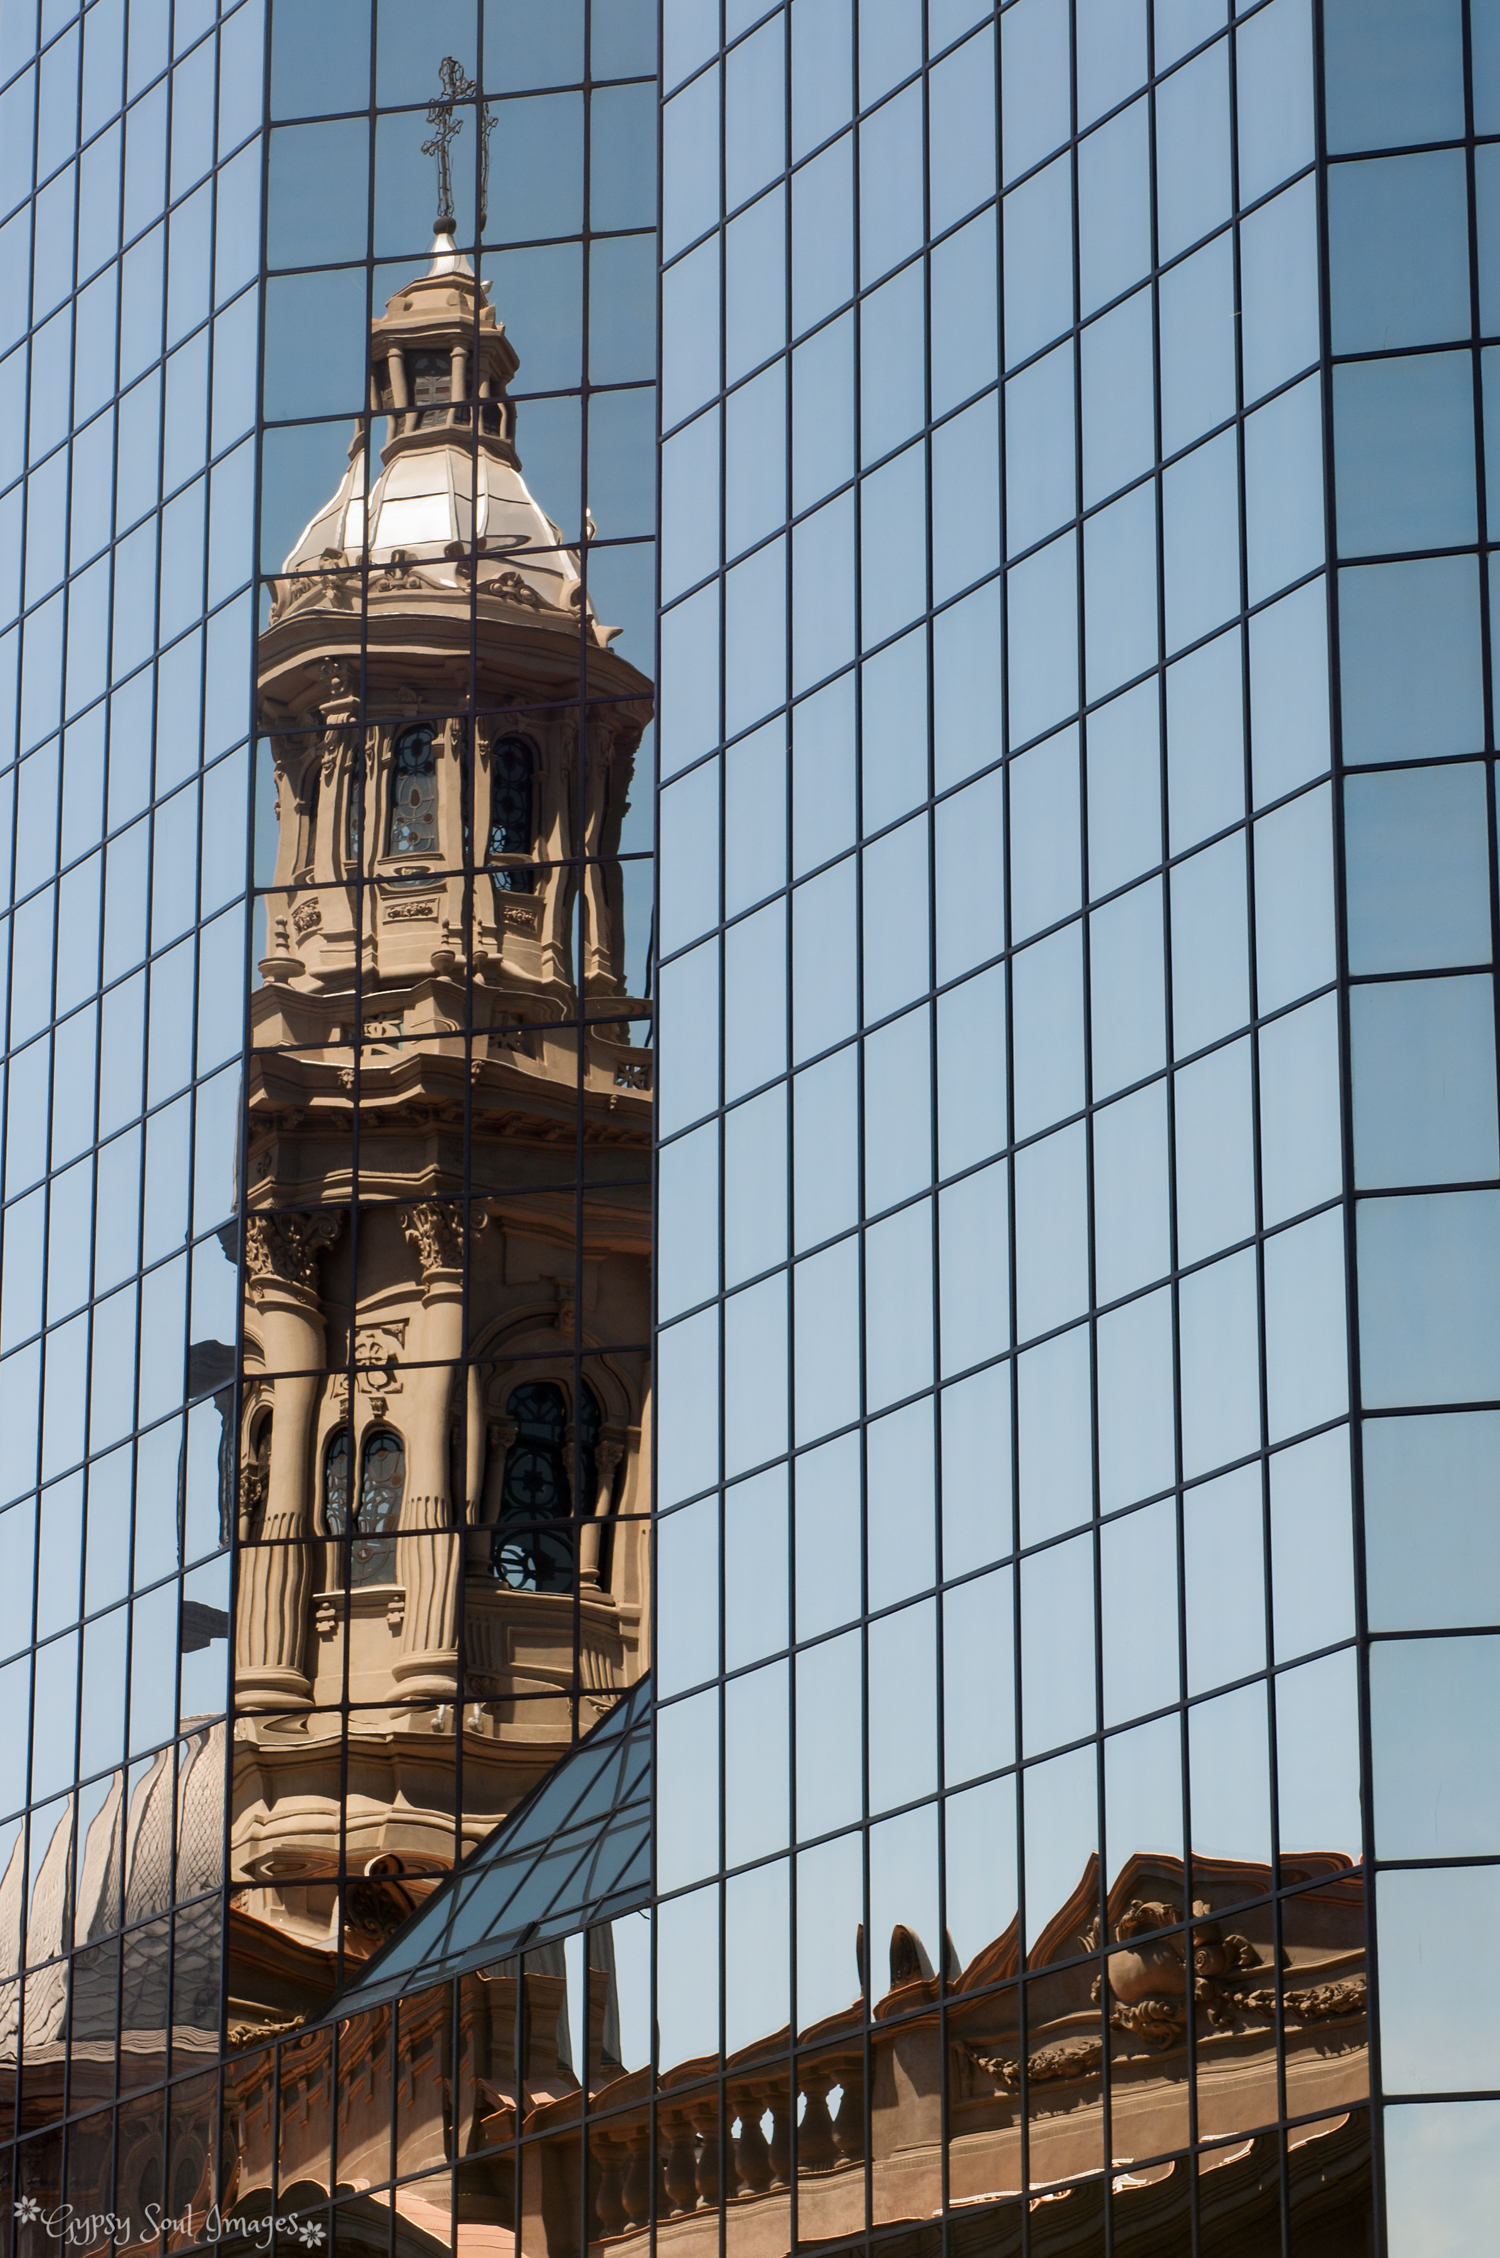 Reflections of Old in New - Santiago, Chile